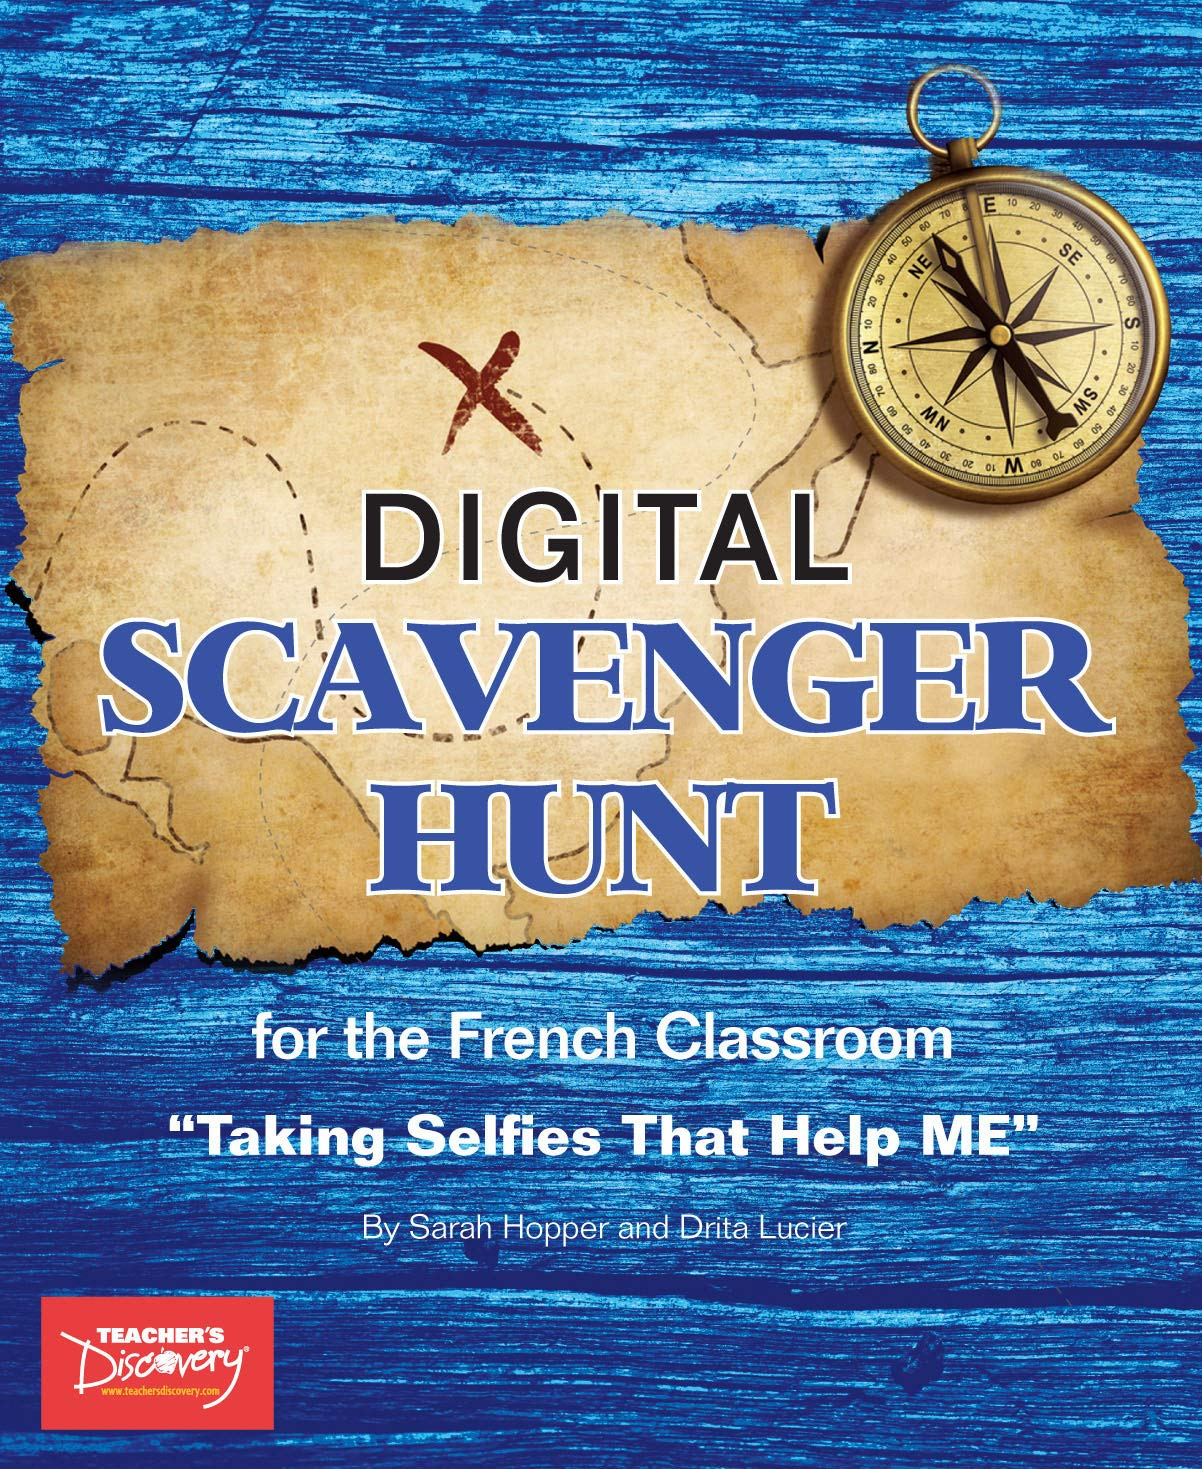 French Digital Scavenger Hunt Book by Teacher's Discovery